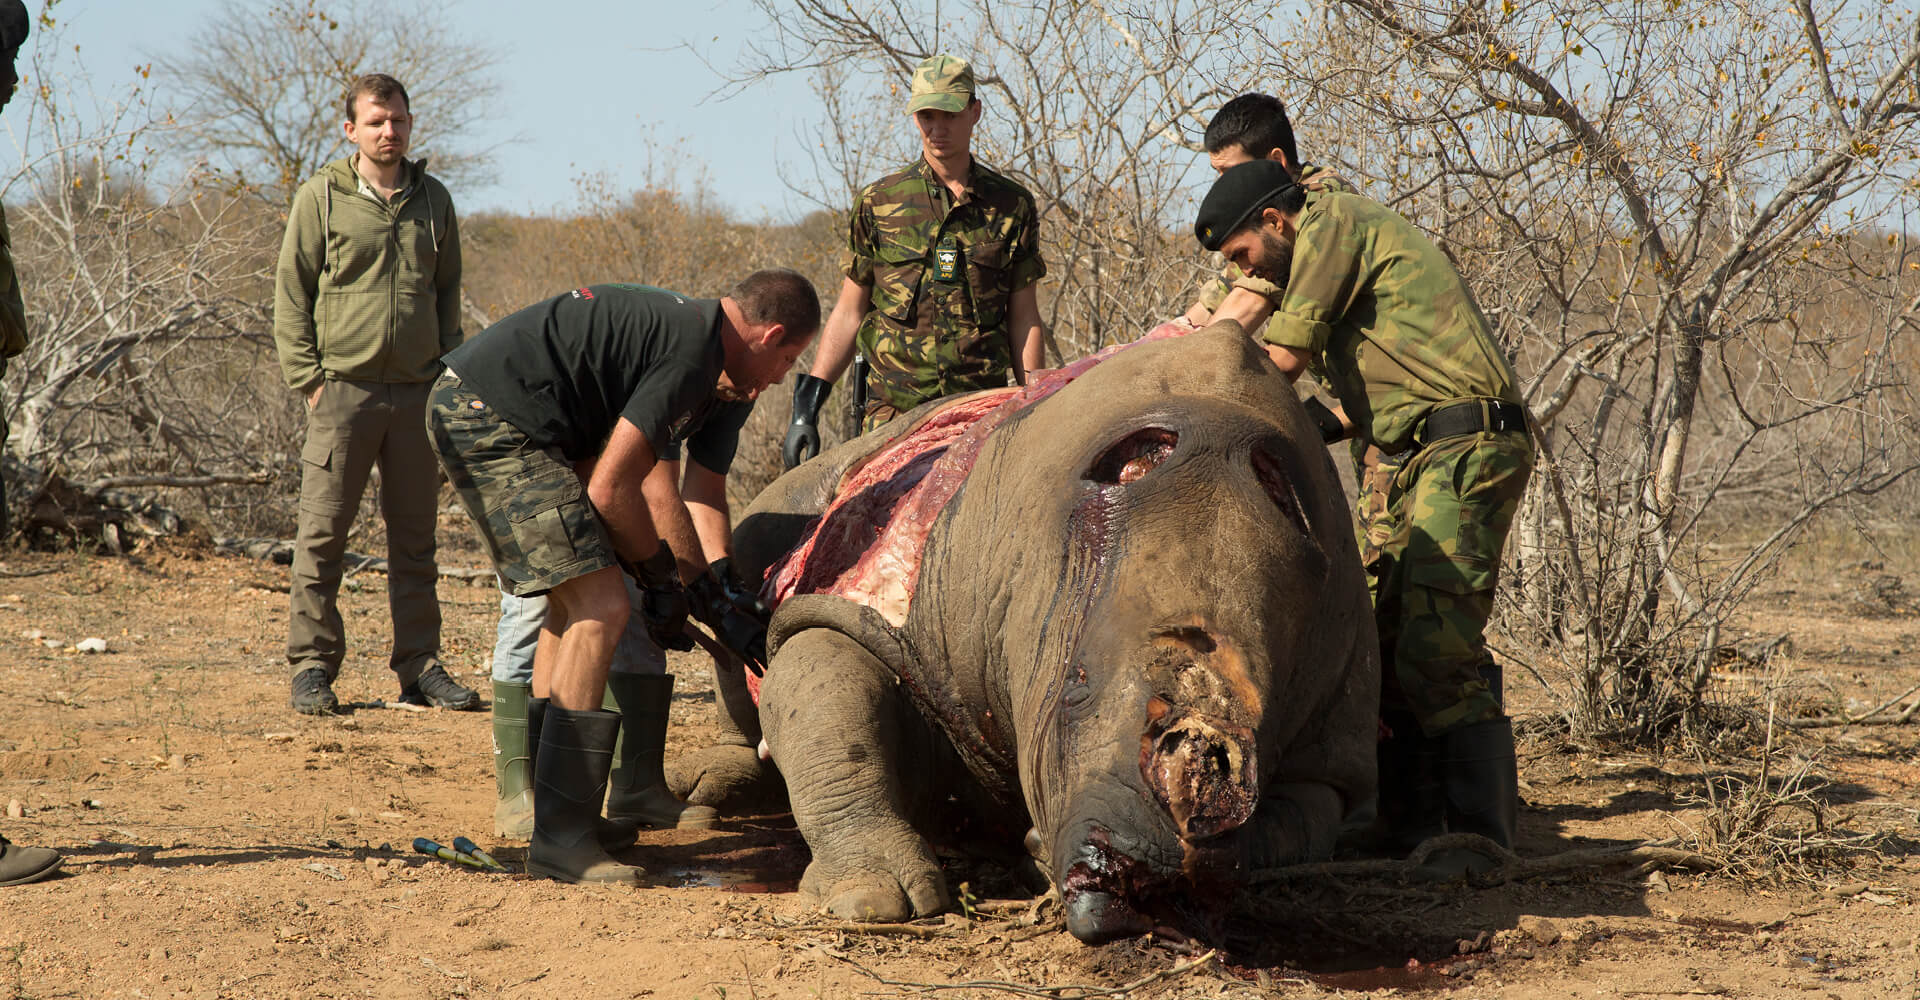 Hemmersbach Rhino Force - Autopsy of a slaughtered rhino